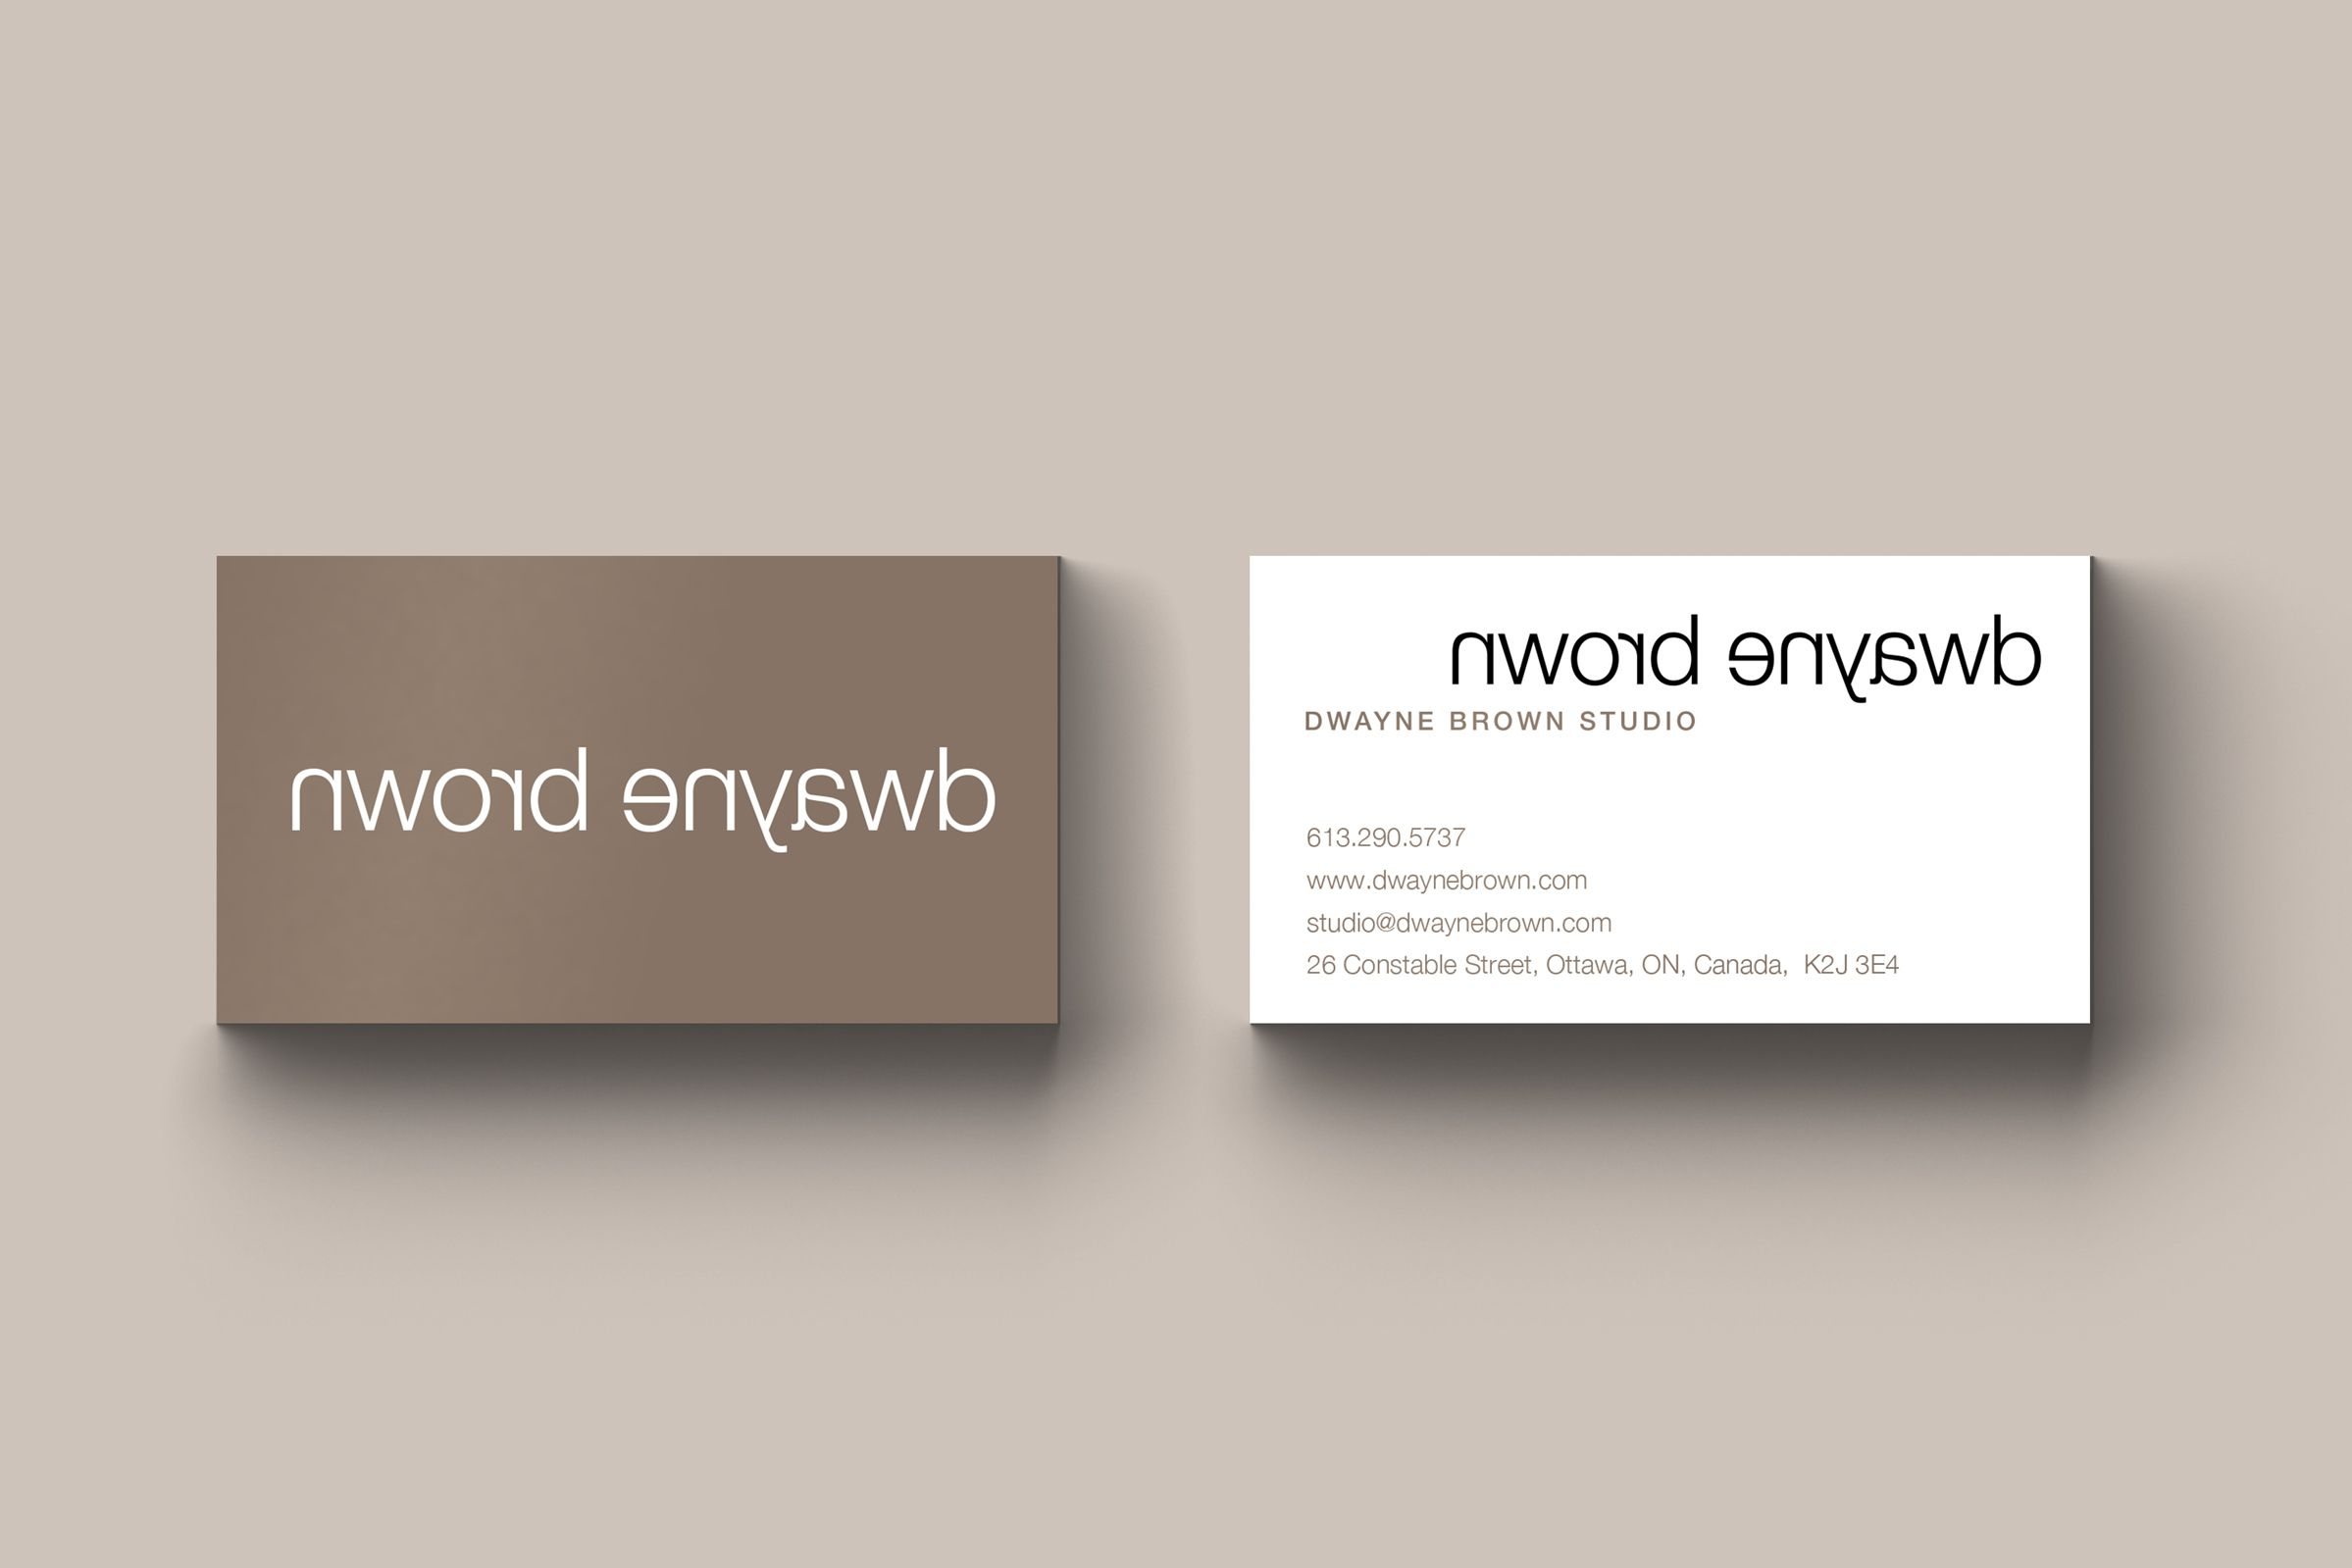 Business Card for Dwayne Brown Studios, an Ottawa photographer by Graphic Design Studio idApostle